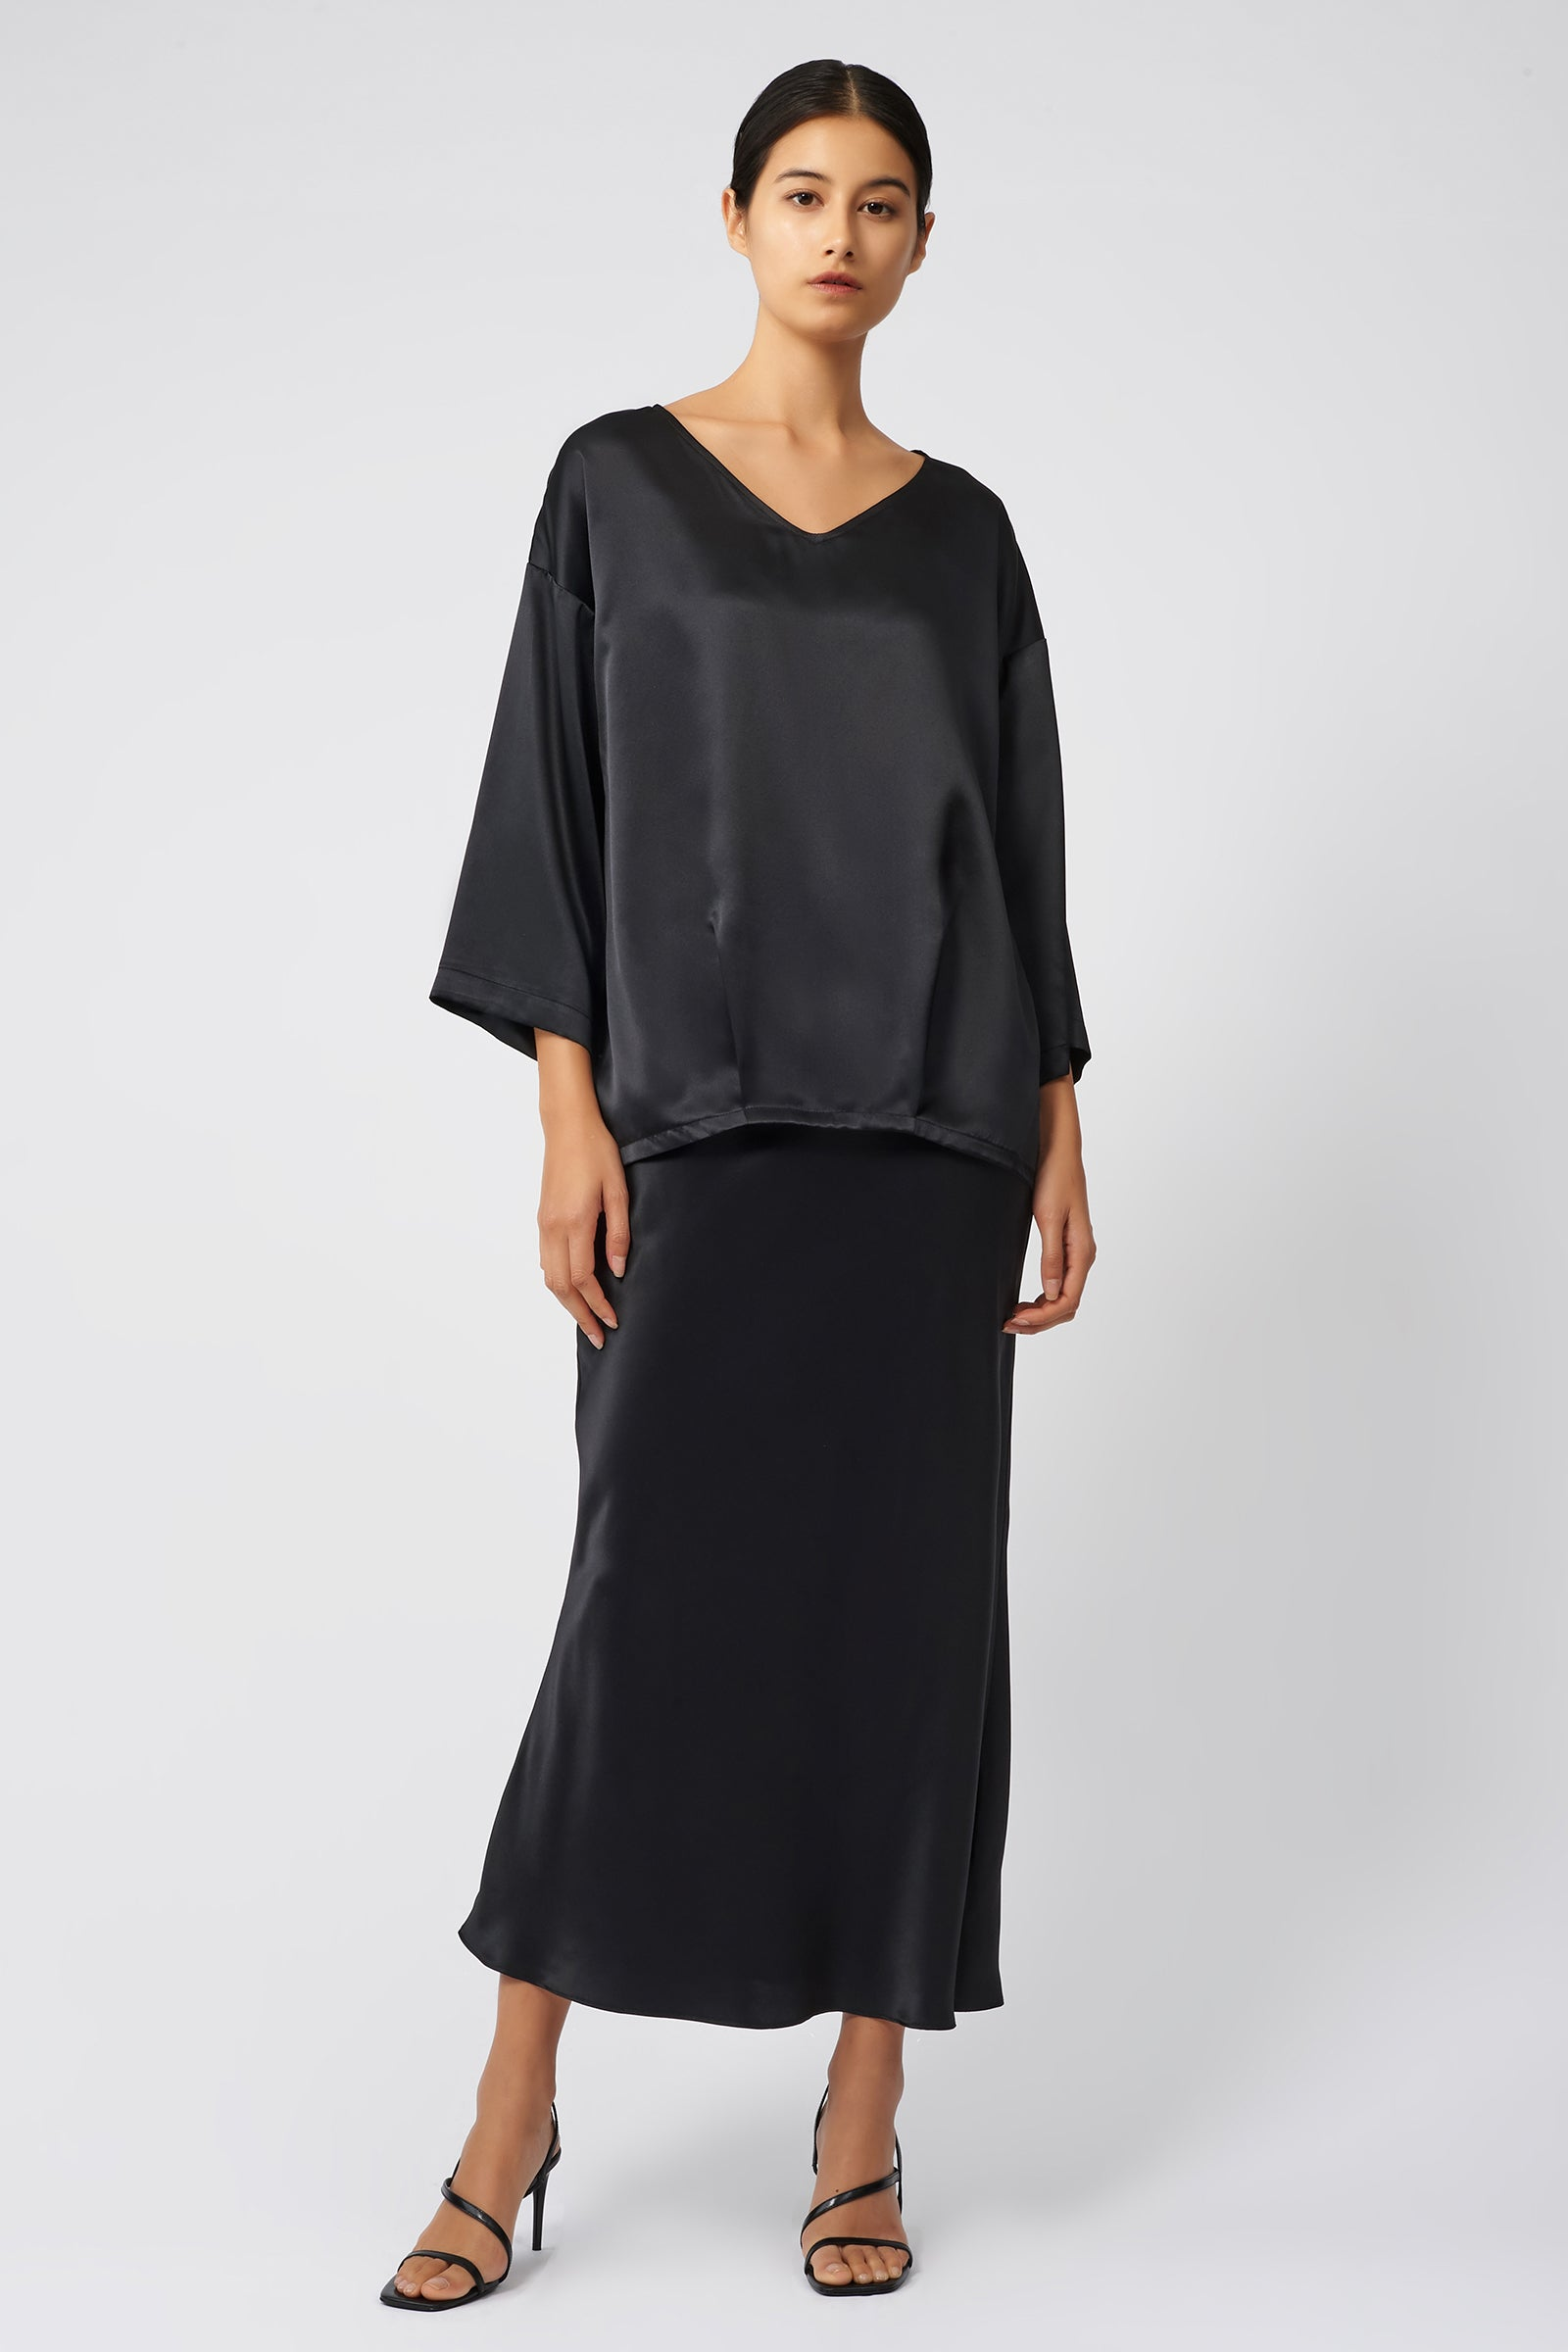 Kal Rieman Bias Silk Skirt in Black on Model Front Full View